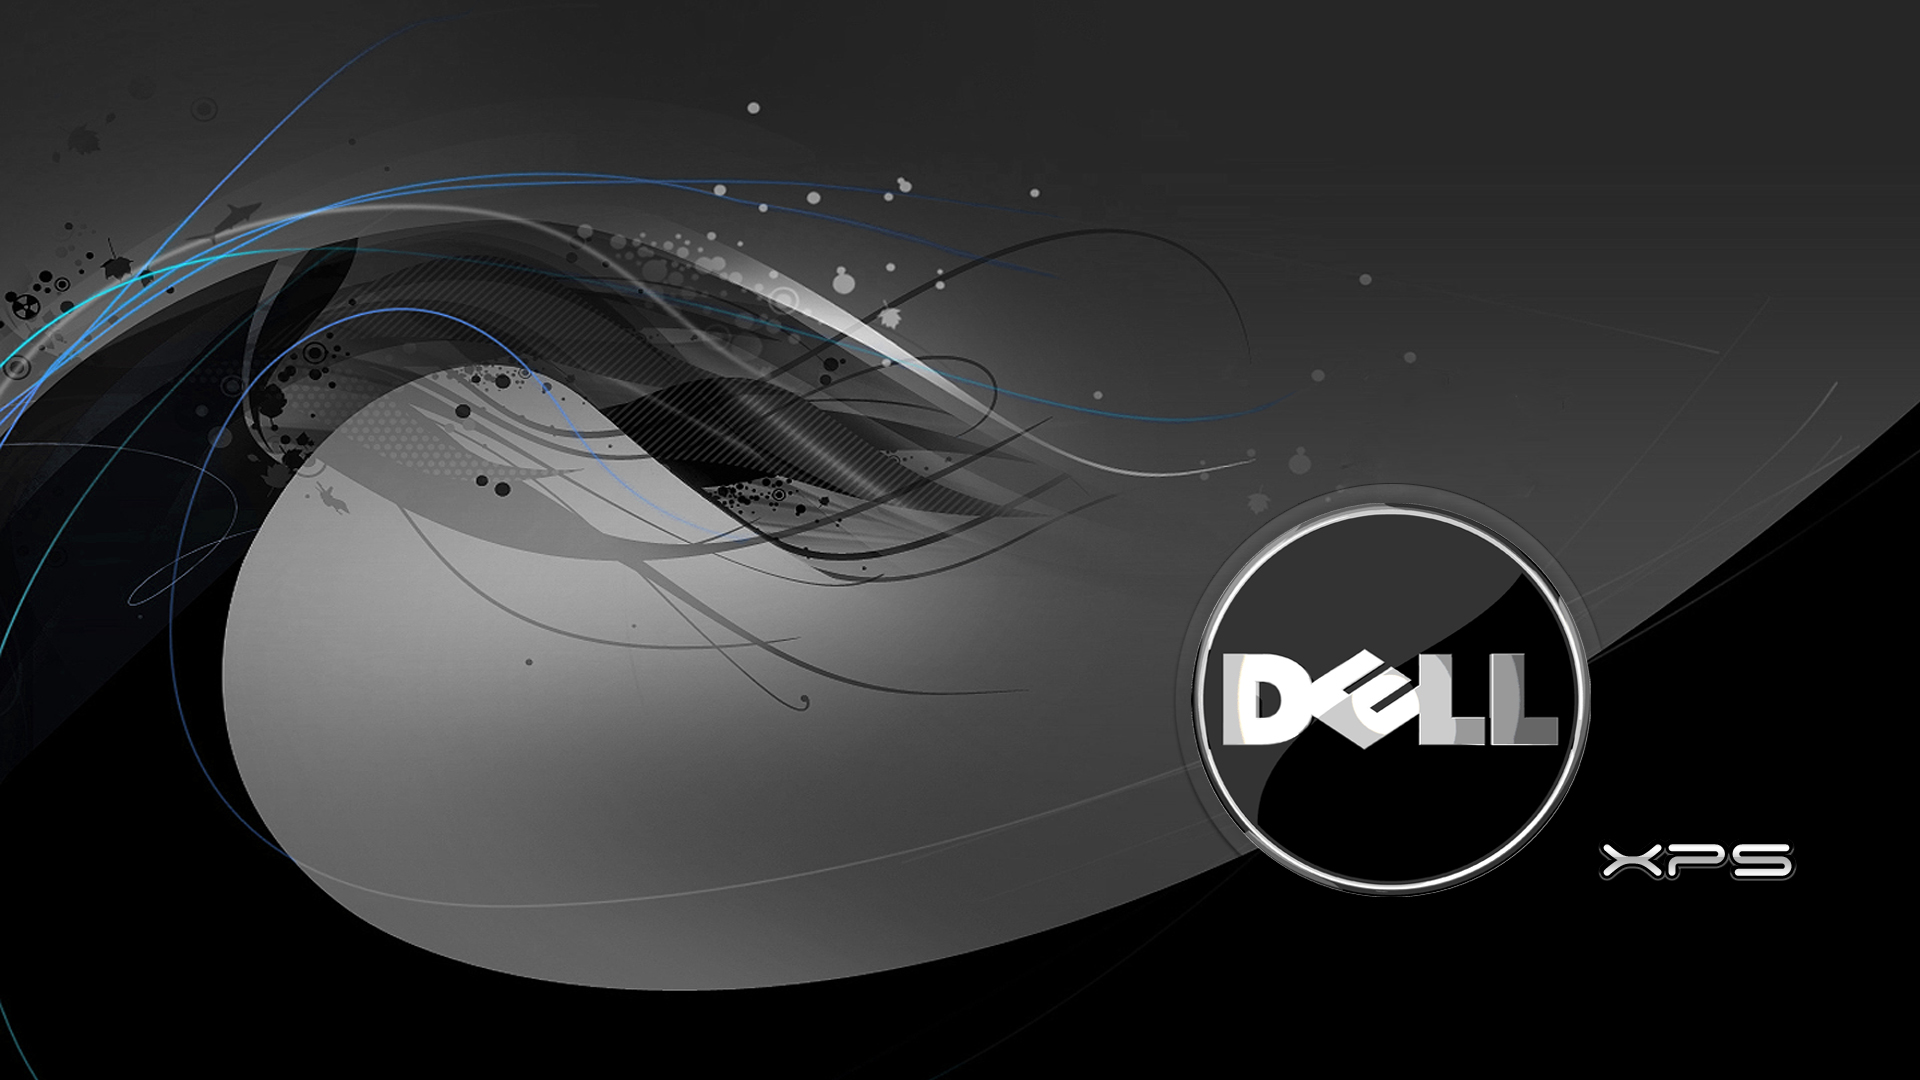 Papel De Parede Dell G3: Dell Wallpaper Bw Two By Coolcat21 On DeviantArt